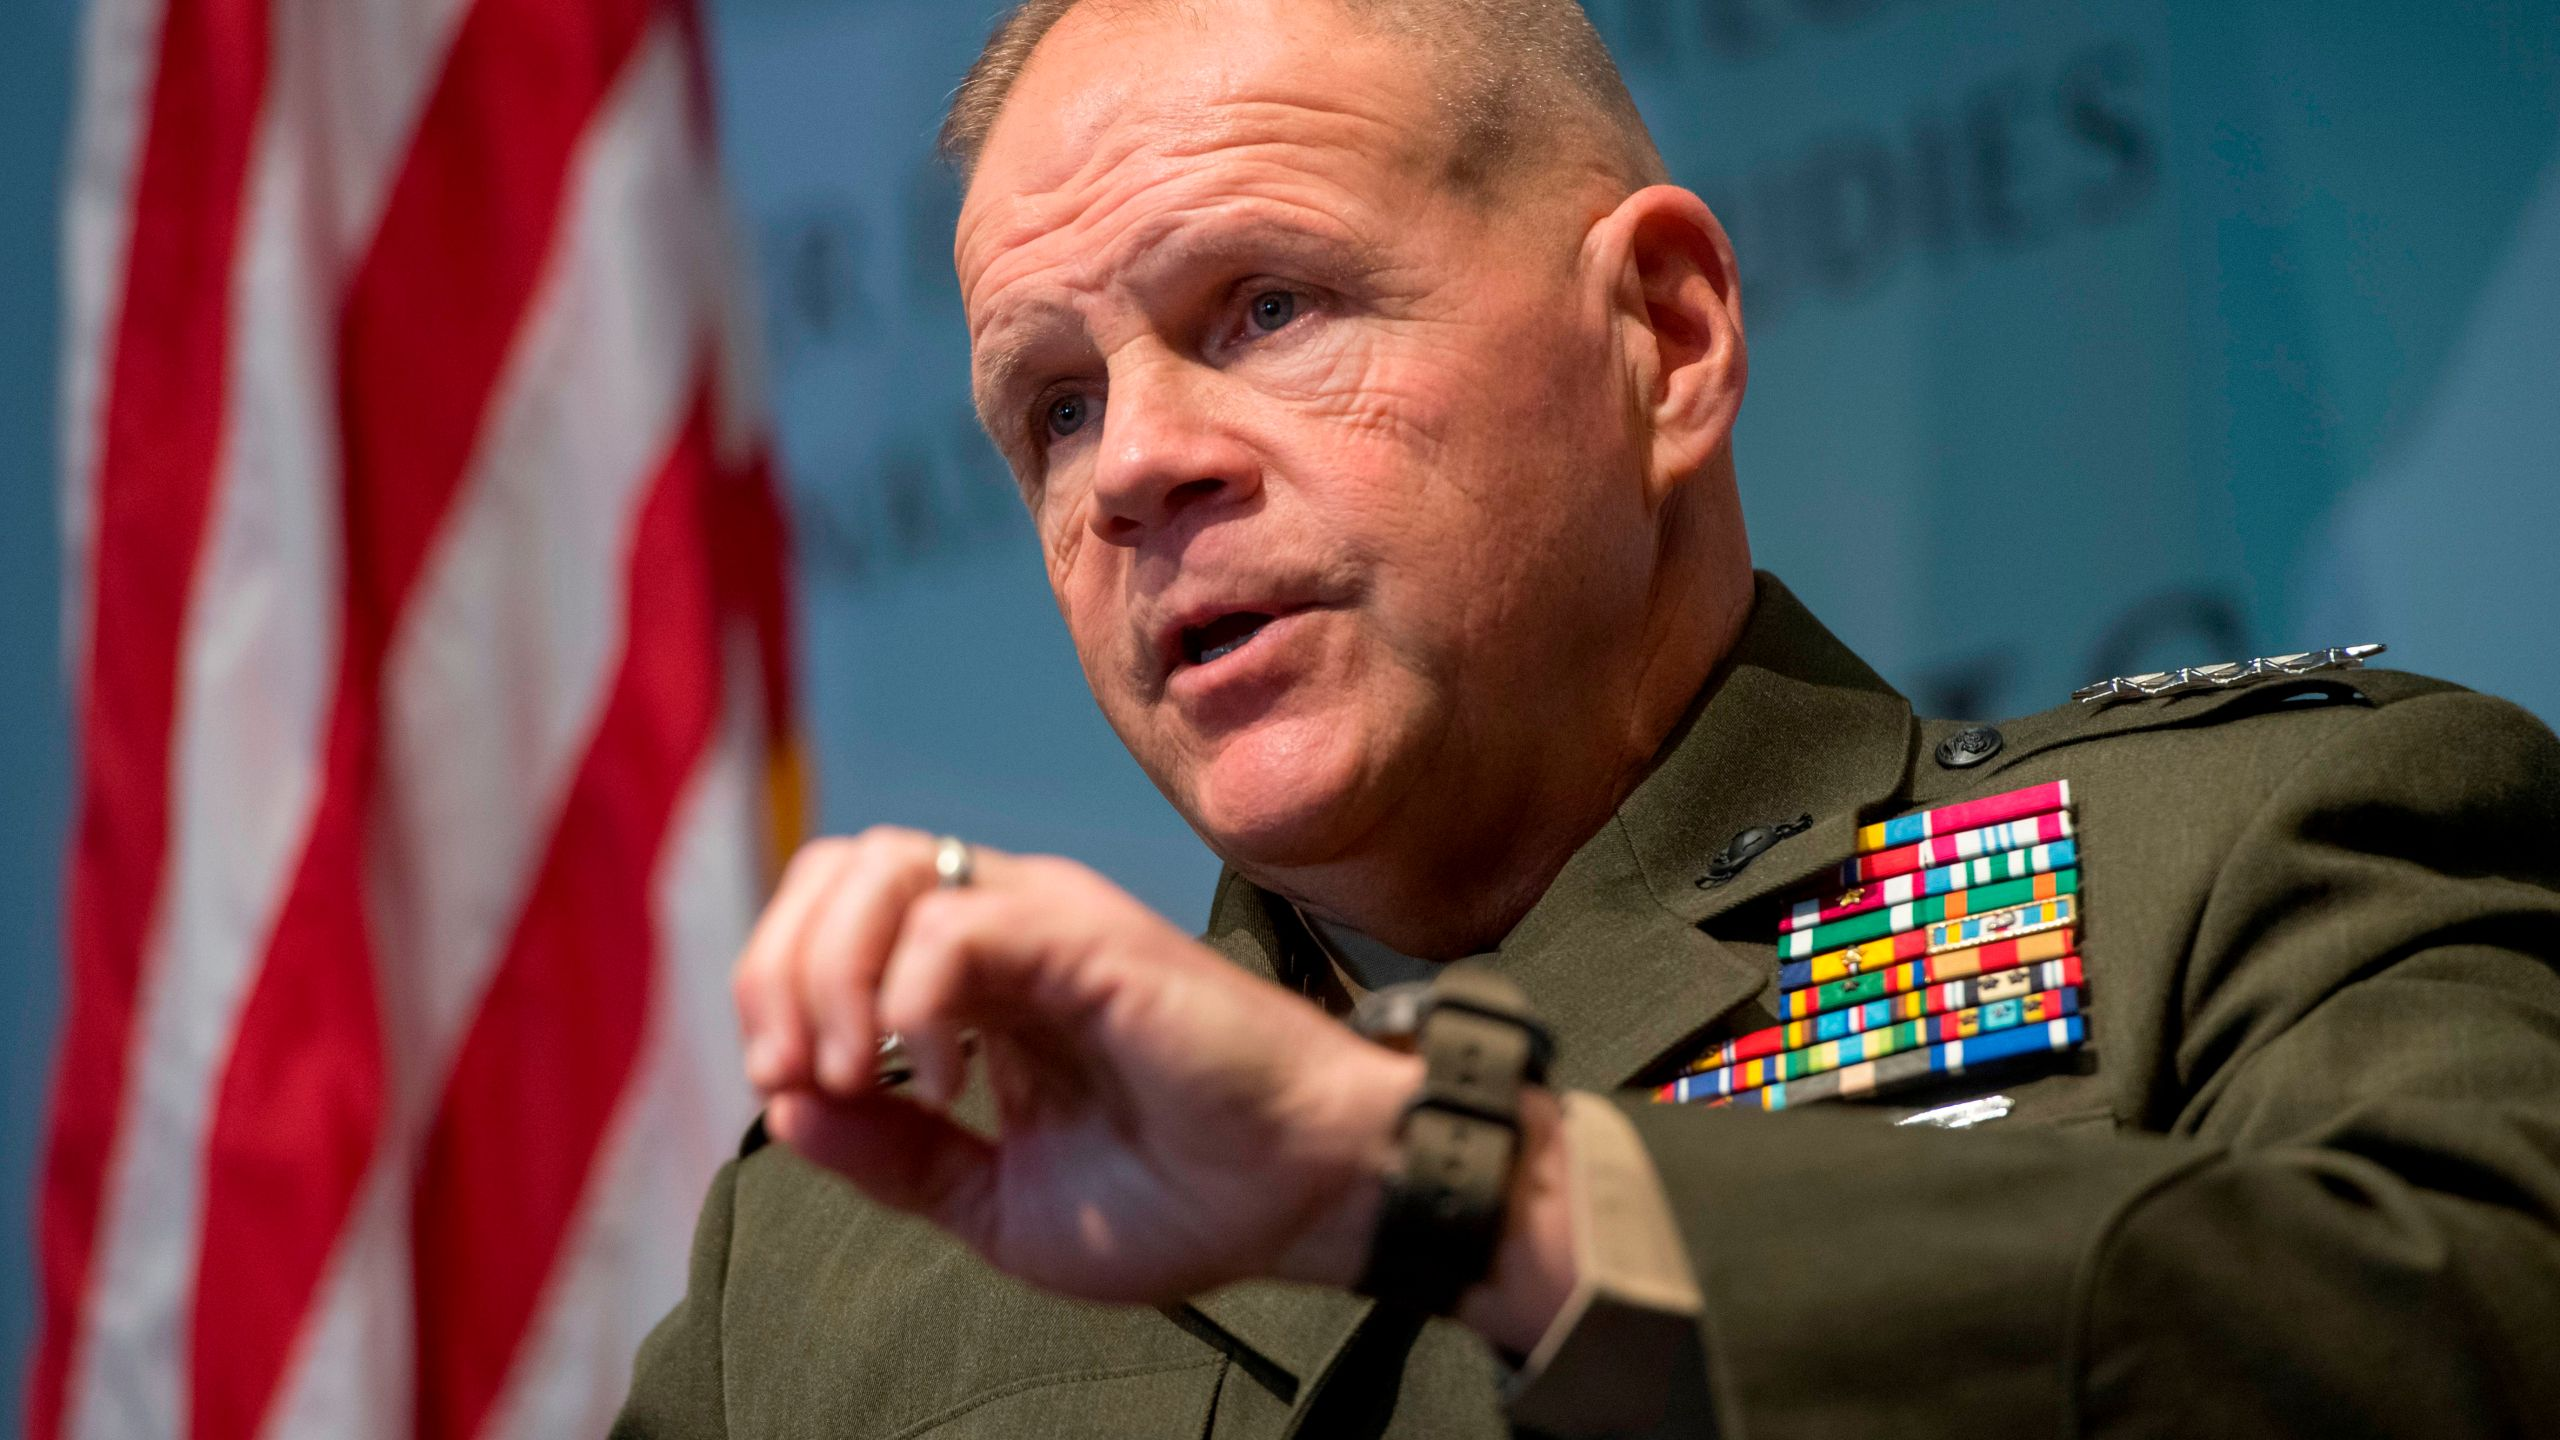 U.S. Marine Corps Commandant General Robert Neller speaks during a discussion at the Center for Strategic and International Studies in Washington, D.C, on Jan. 25, 2018. (Credit: SAUL LOEB/AFP/Getty Images)